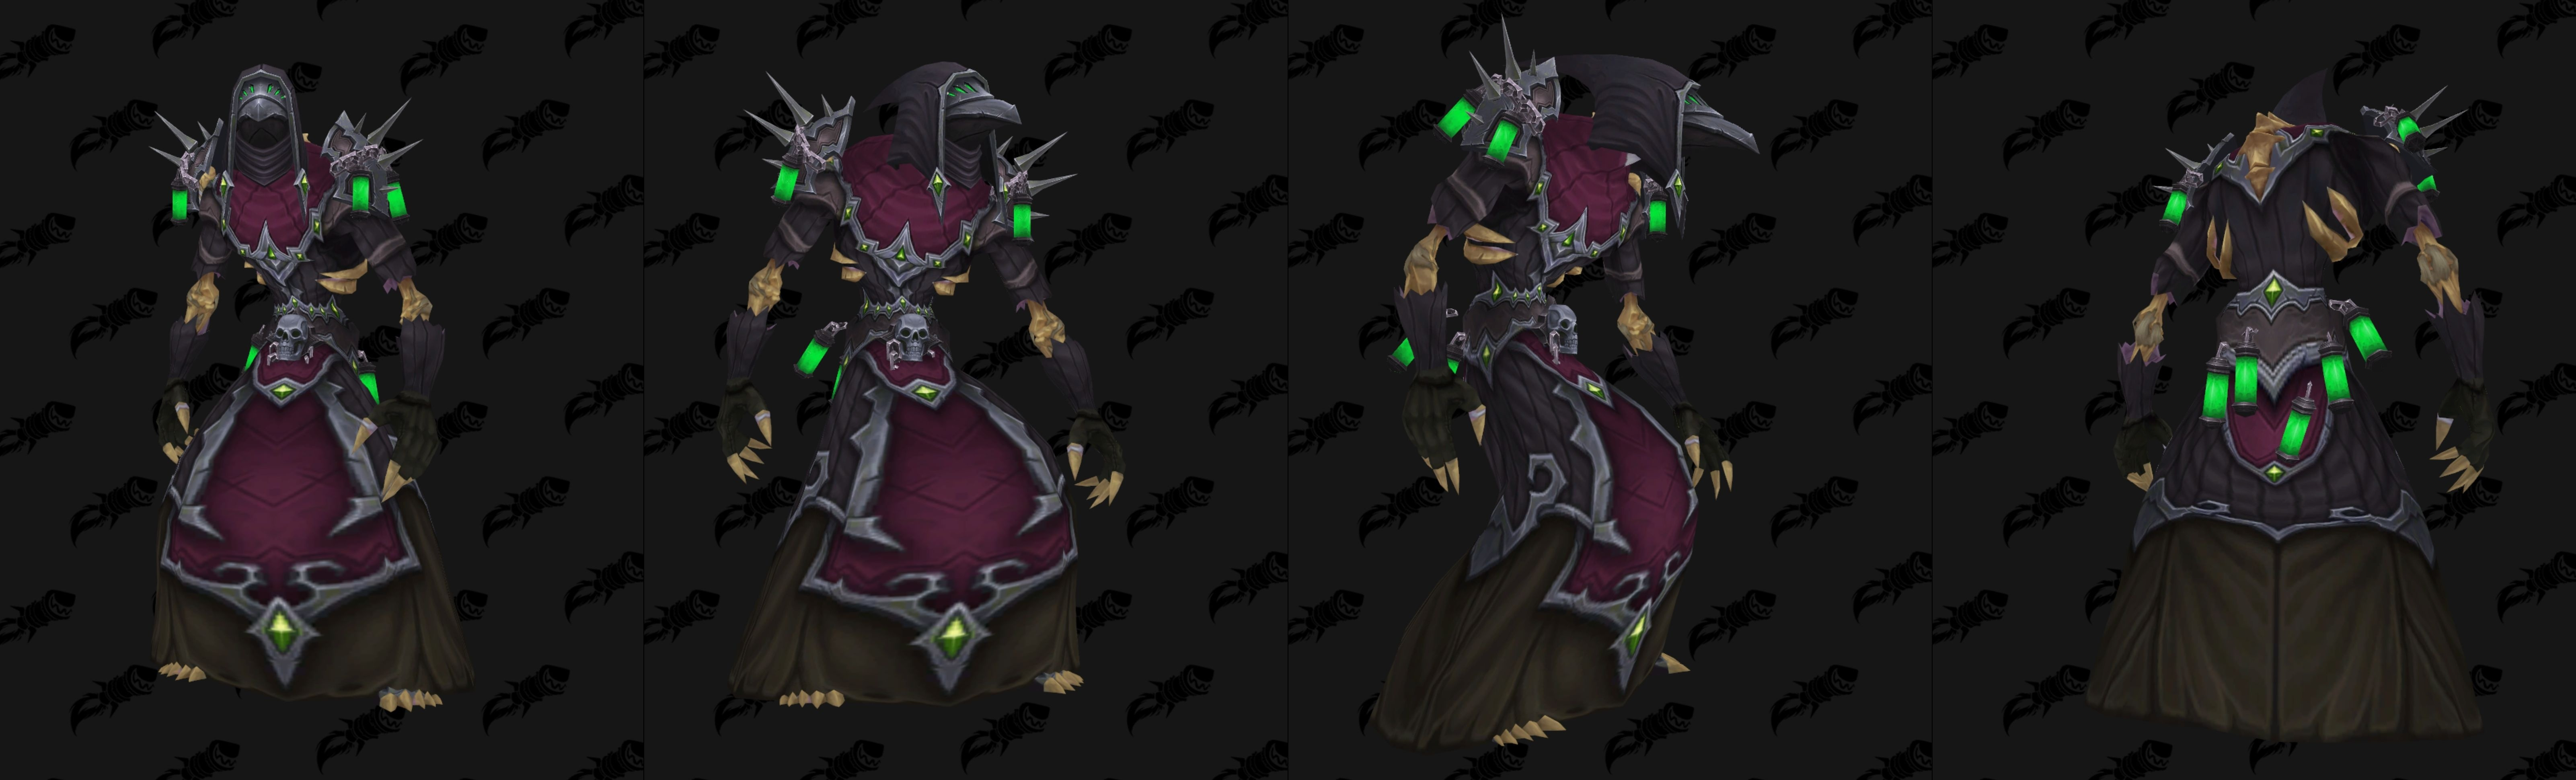 how can i learn new weapons in World Of Warcraft? in boold ...